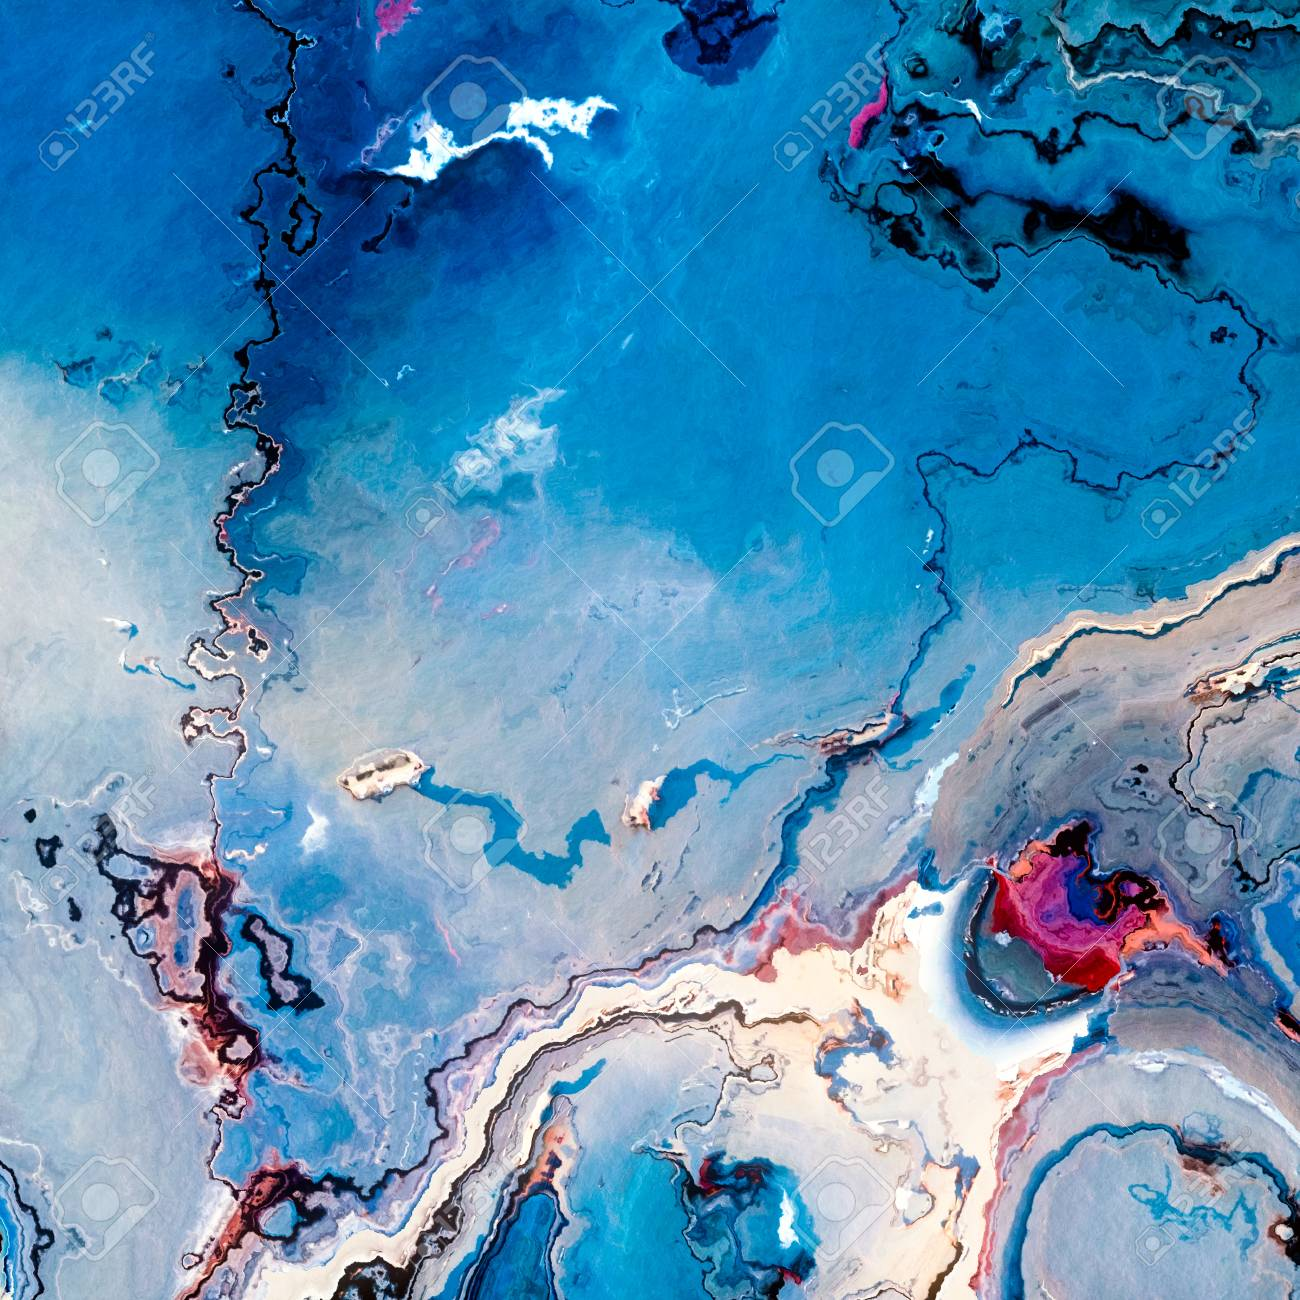 Blue Terrain Or Paint Spill Abstract Background Stock Photo 1300x1300